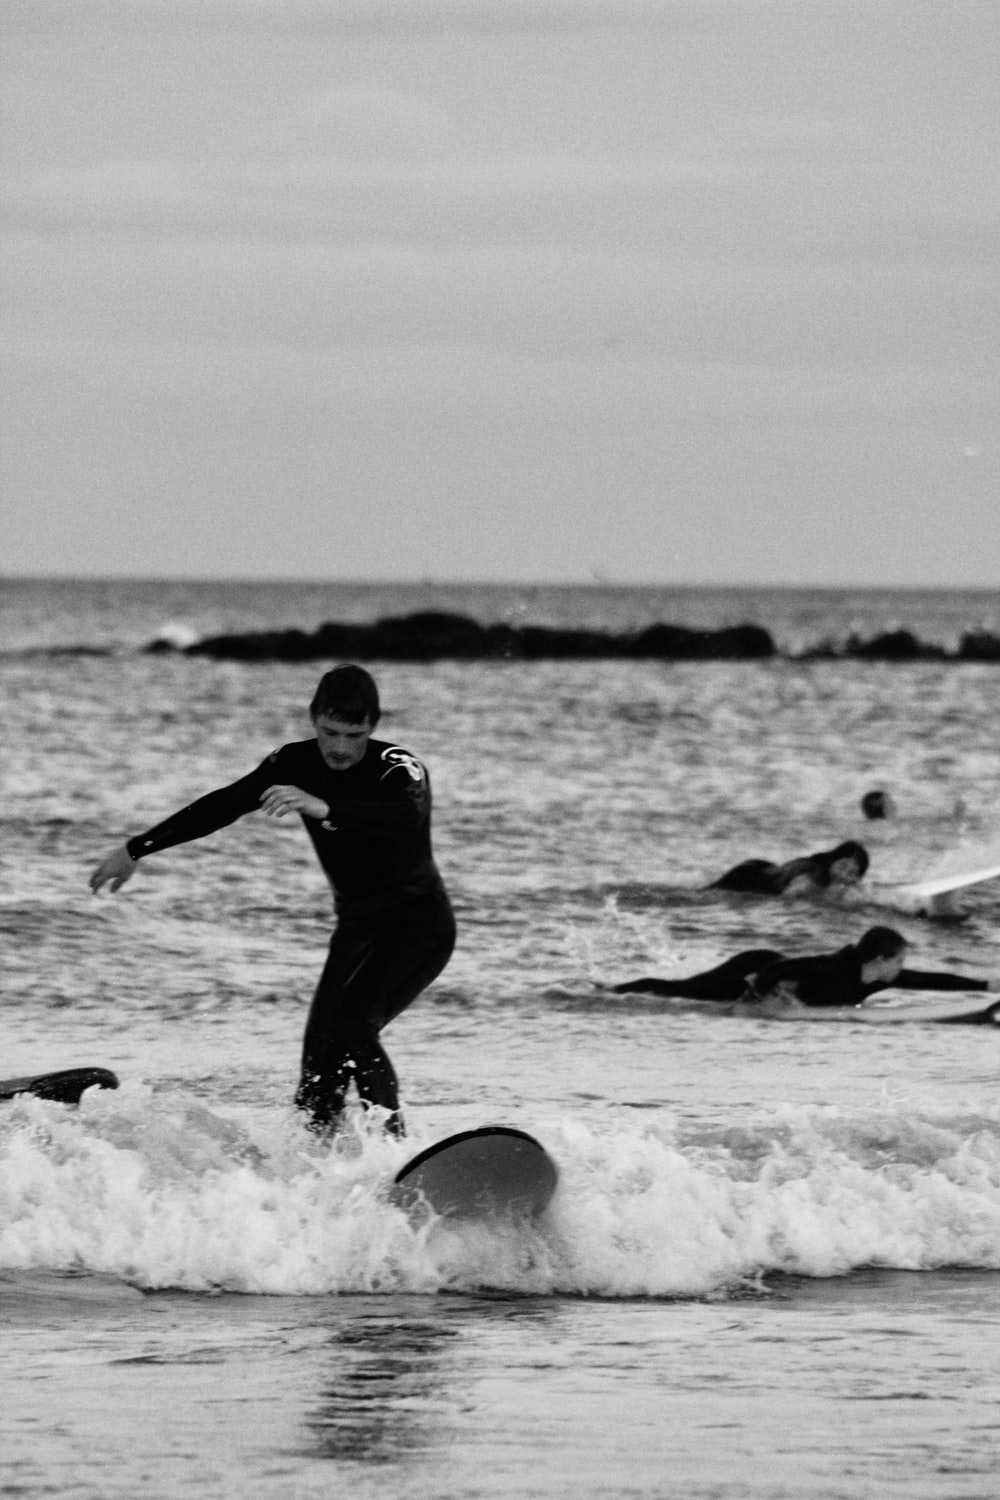 man in black wet suit playing on the beach